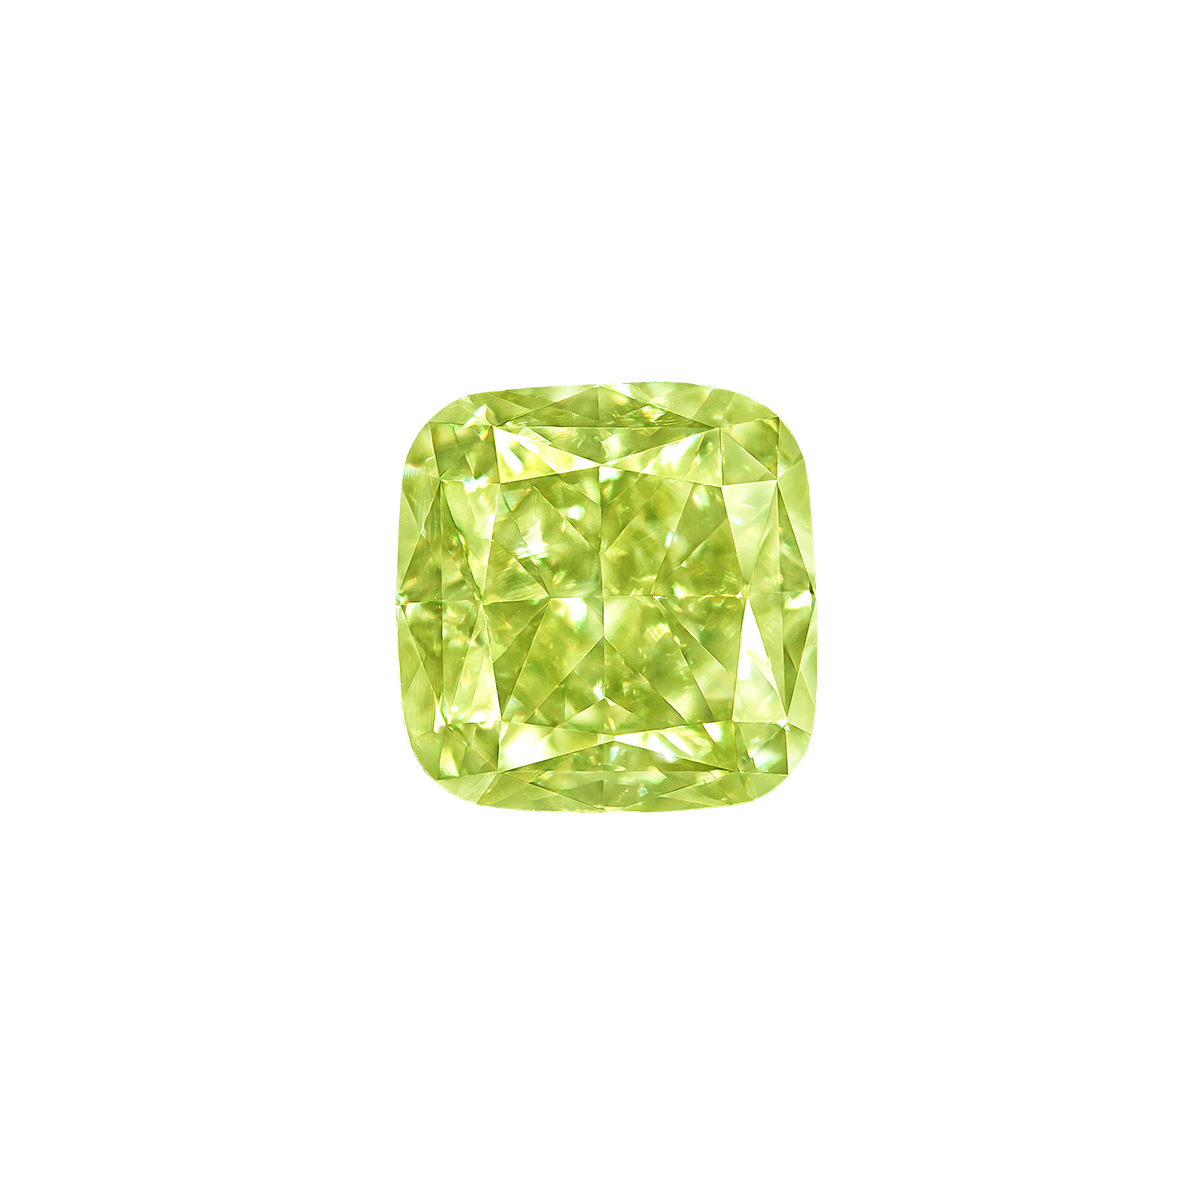 GIA 1.06 克拉 黃綠鑽裸石